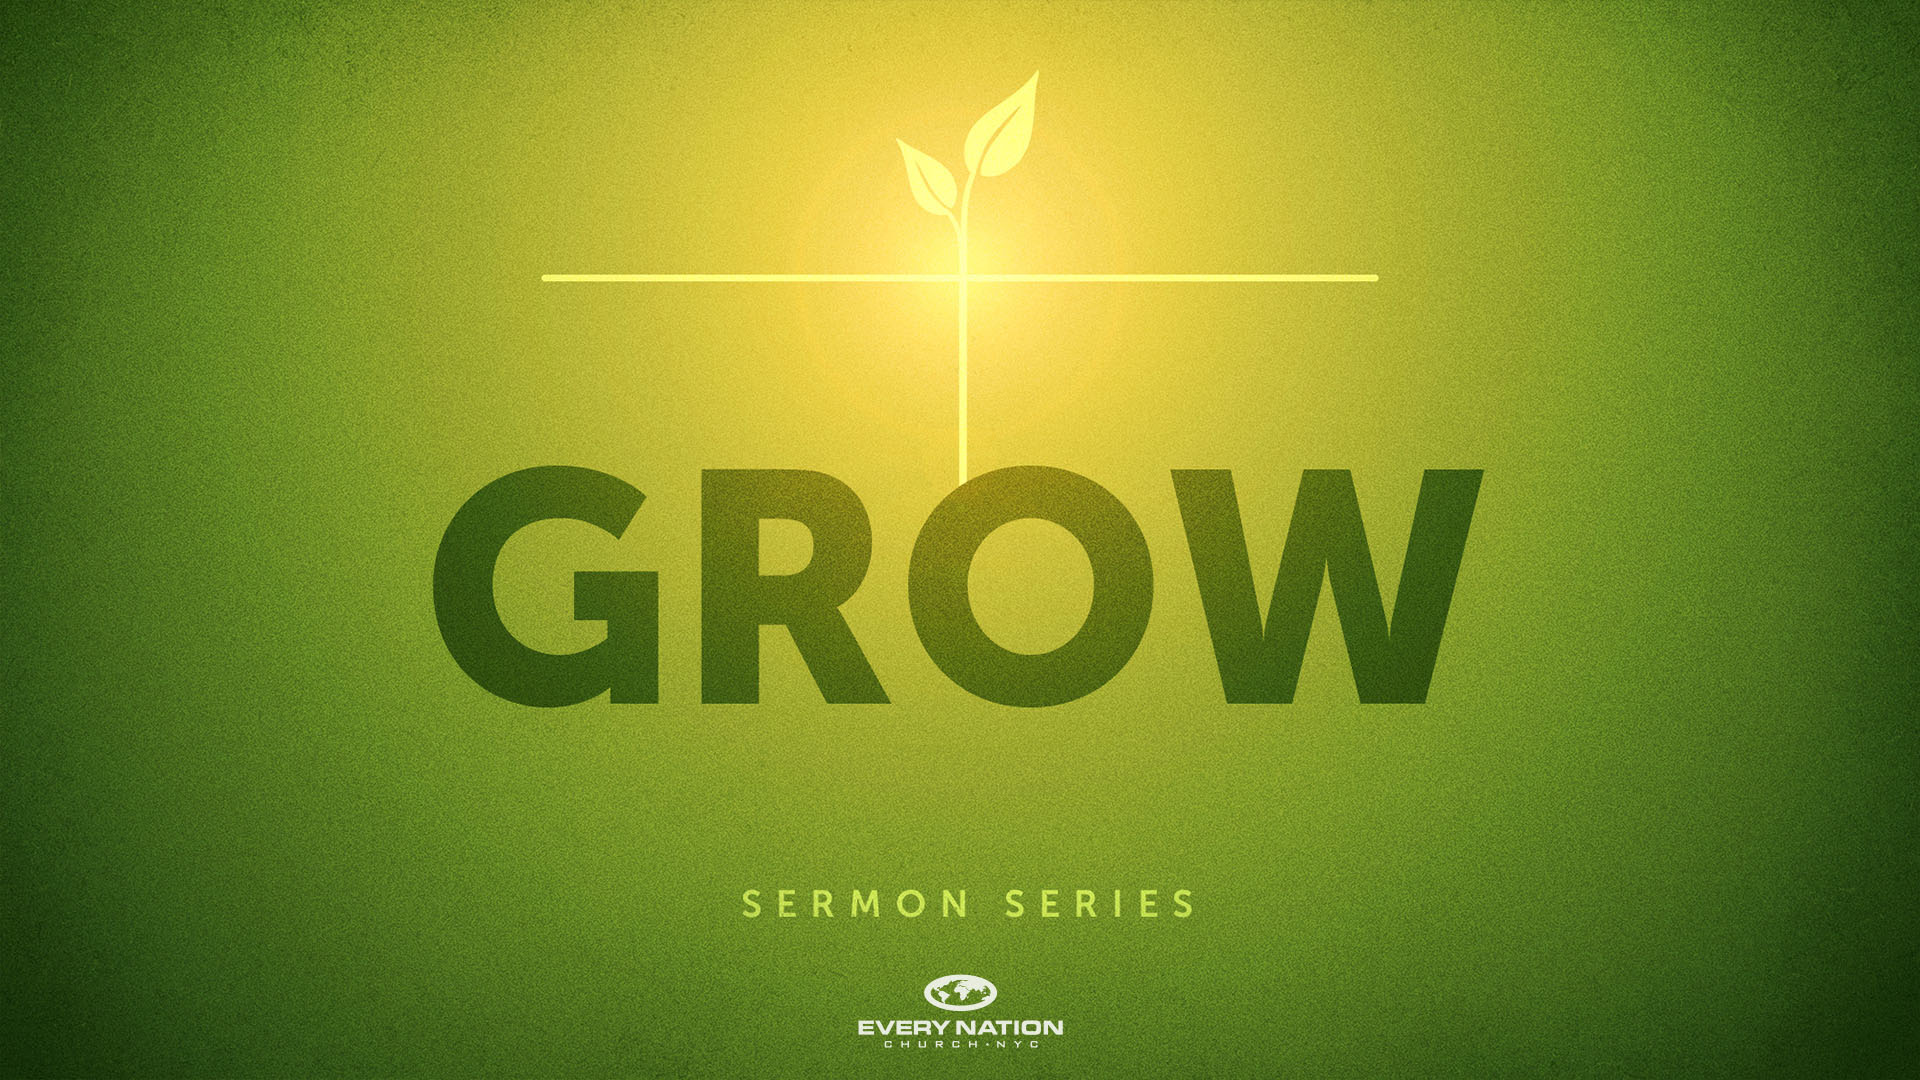 Grow Sermon Series